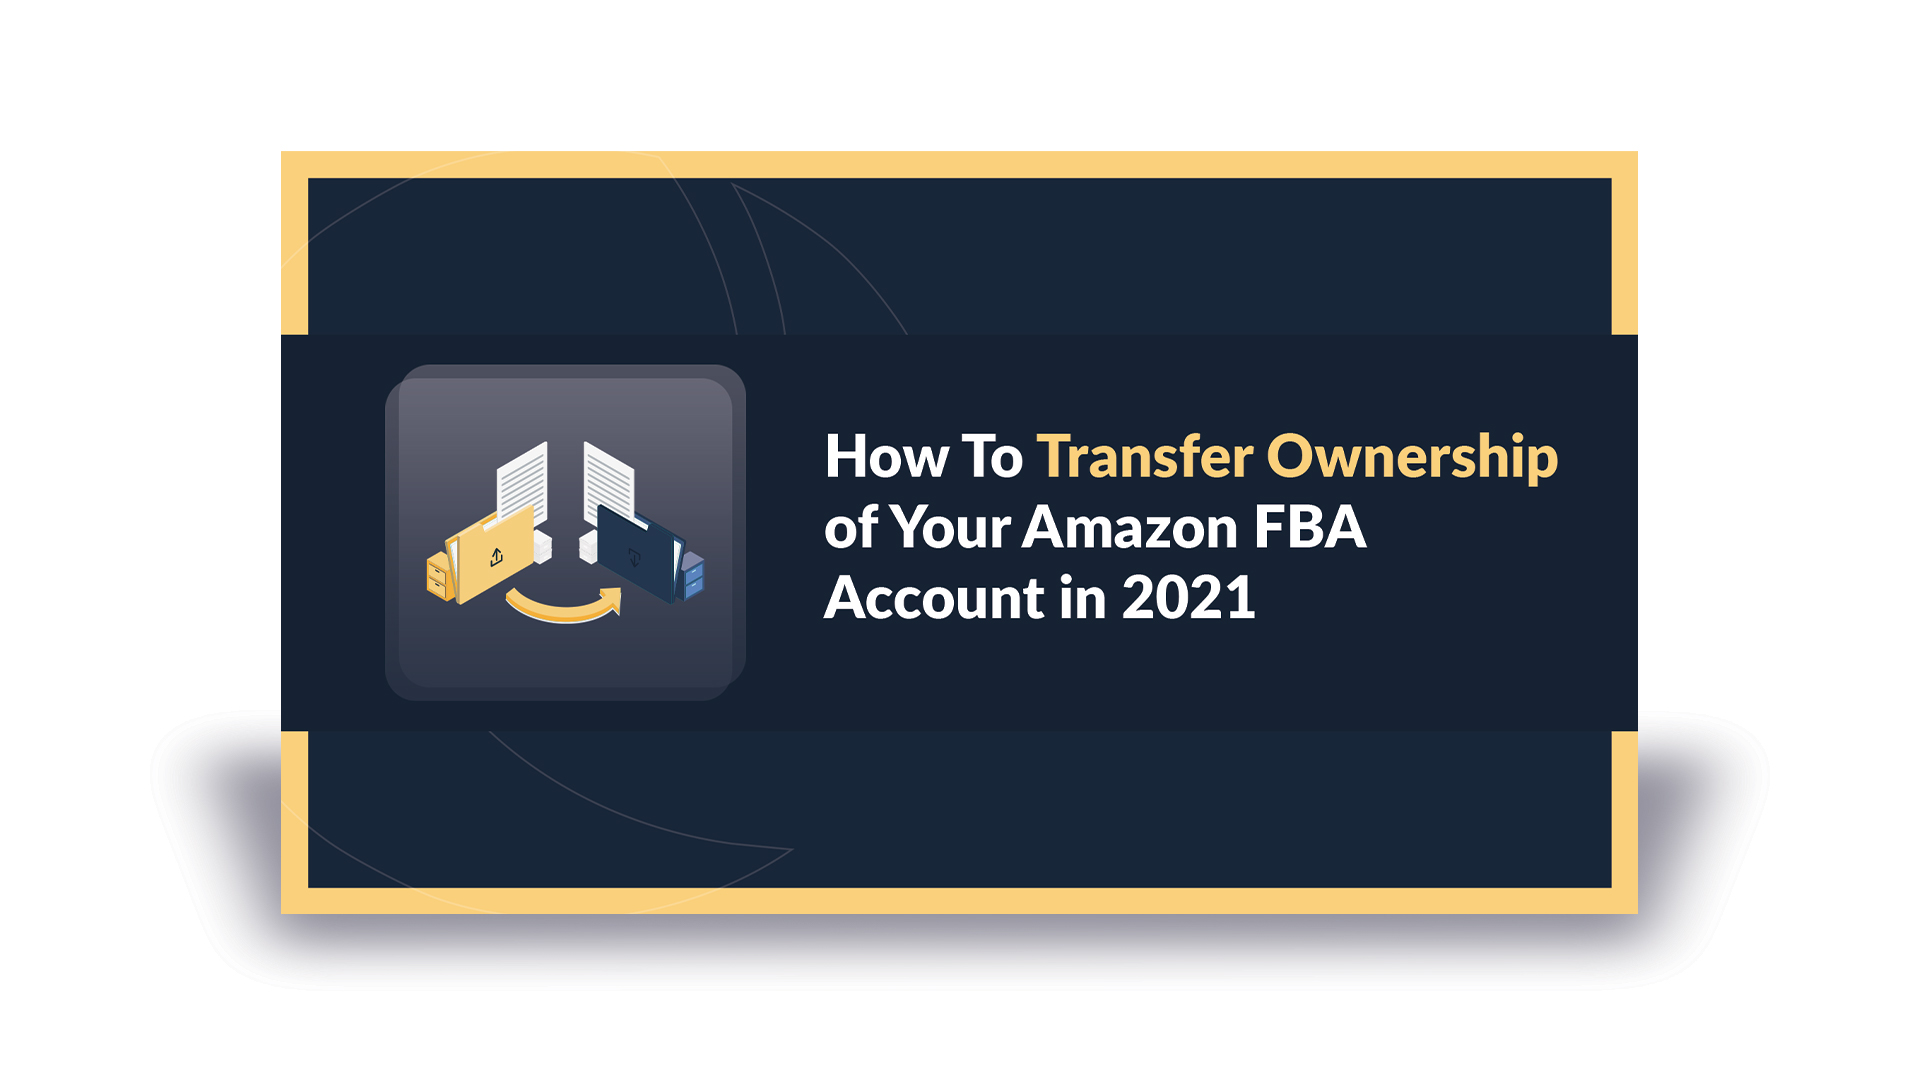 How To Transfer Ownership of Your Amazon FBA Account in 2021